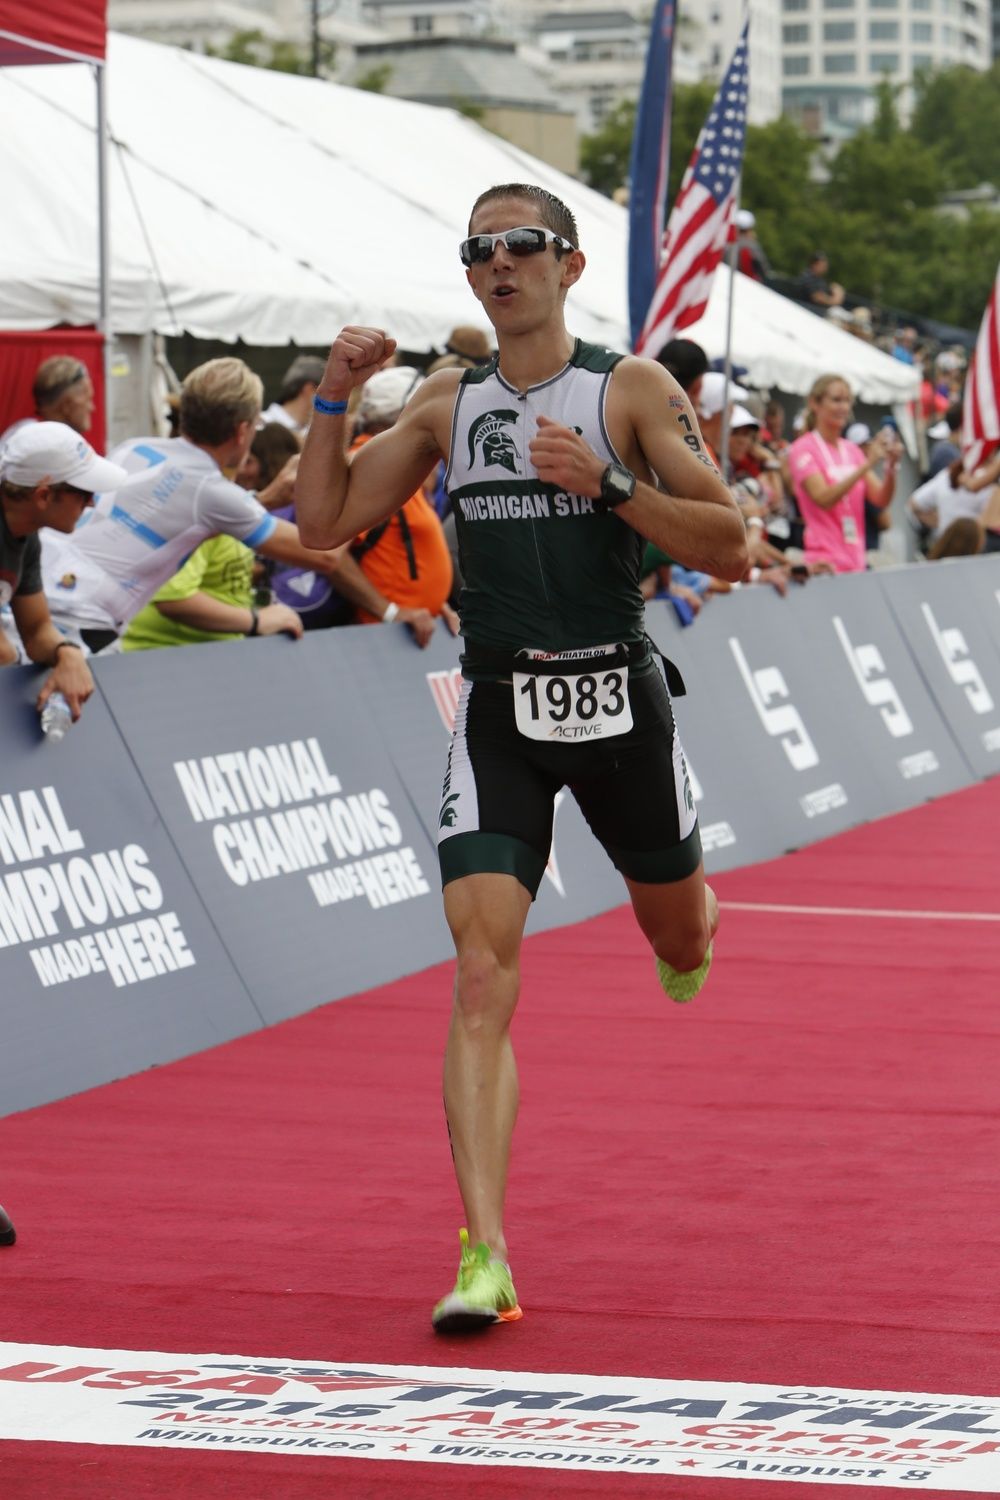 USAT Age-Group National Championship